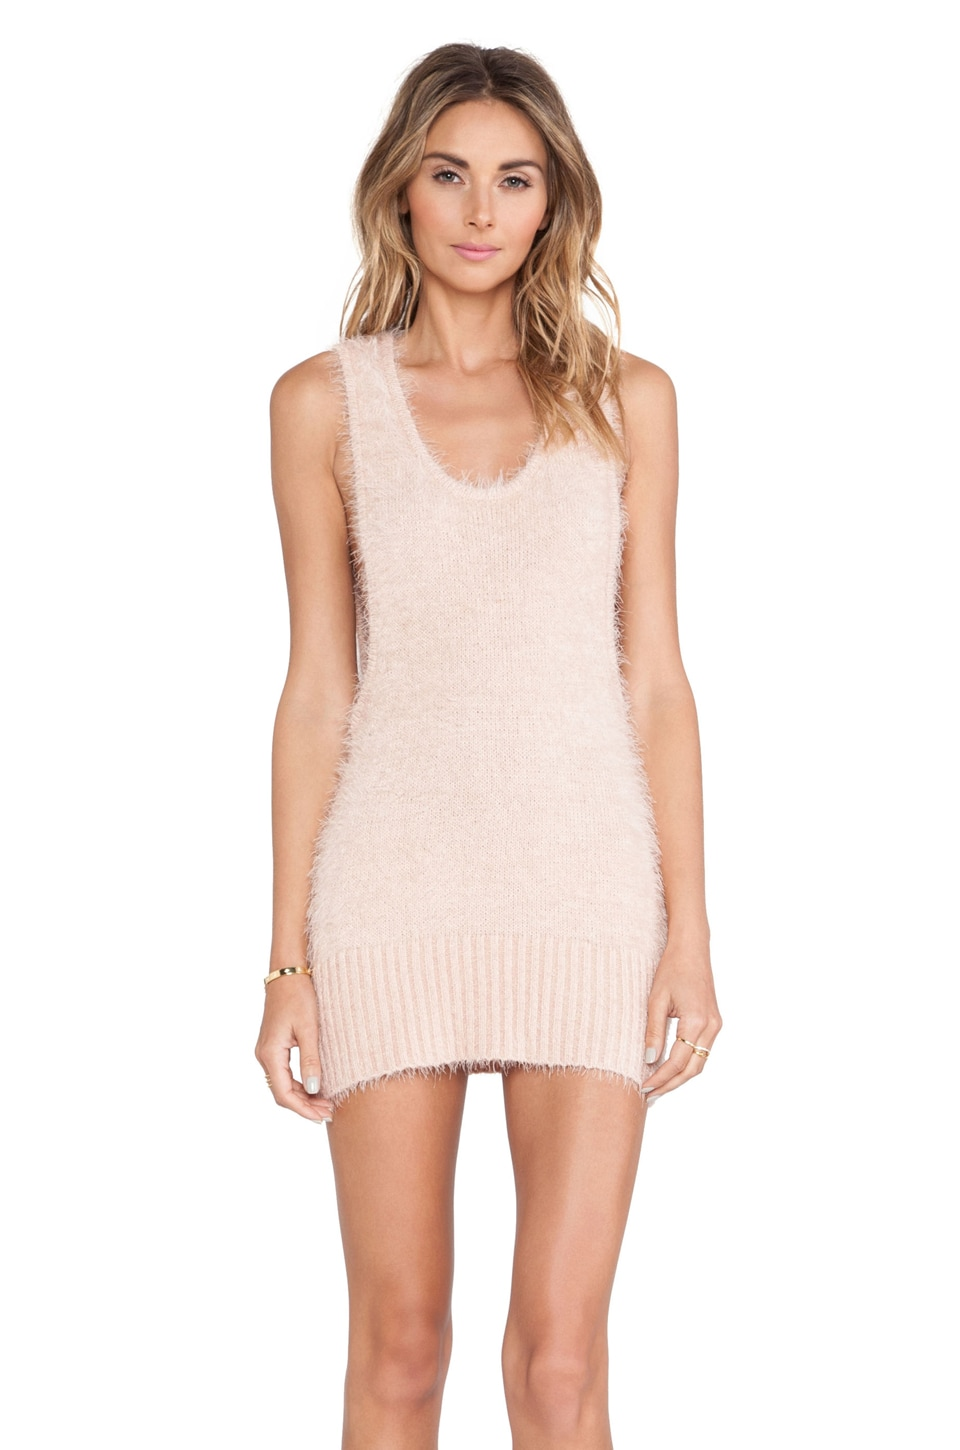 For Love & Lemons Ski Bunny Tank Dress in Blush